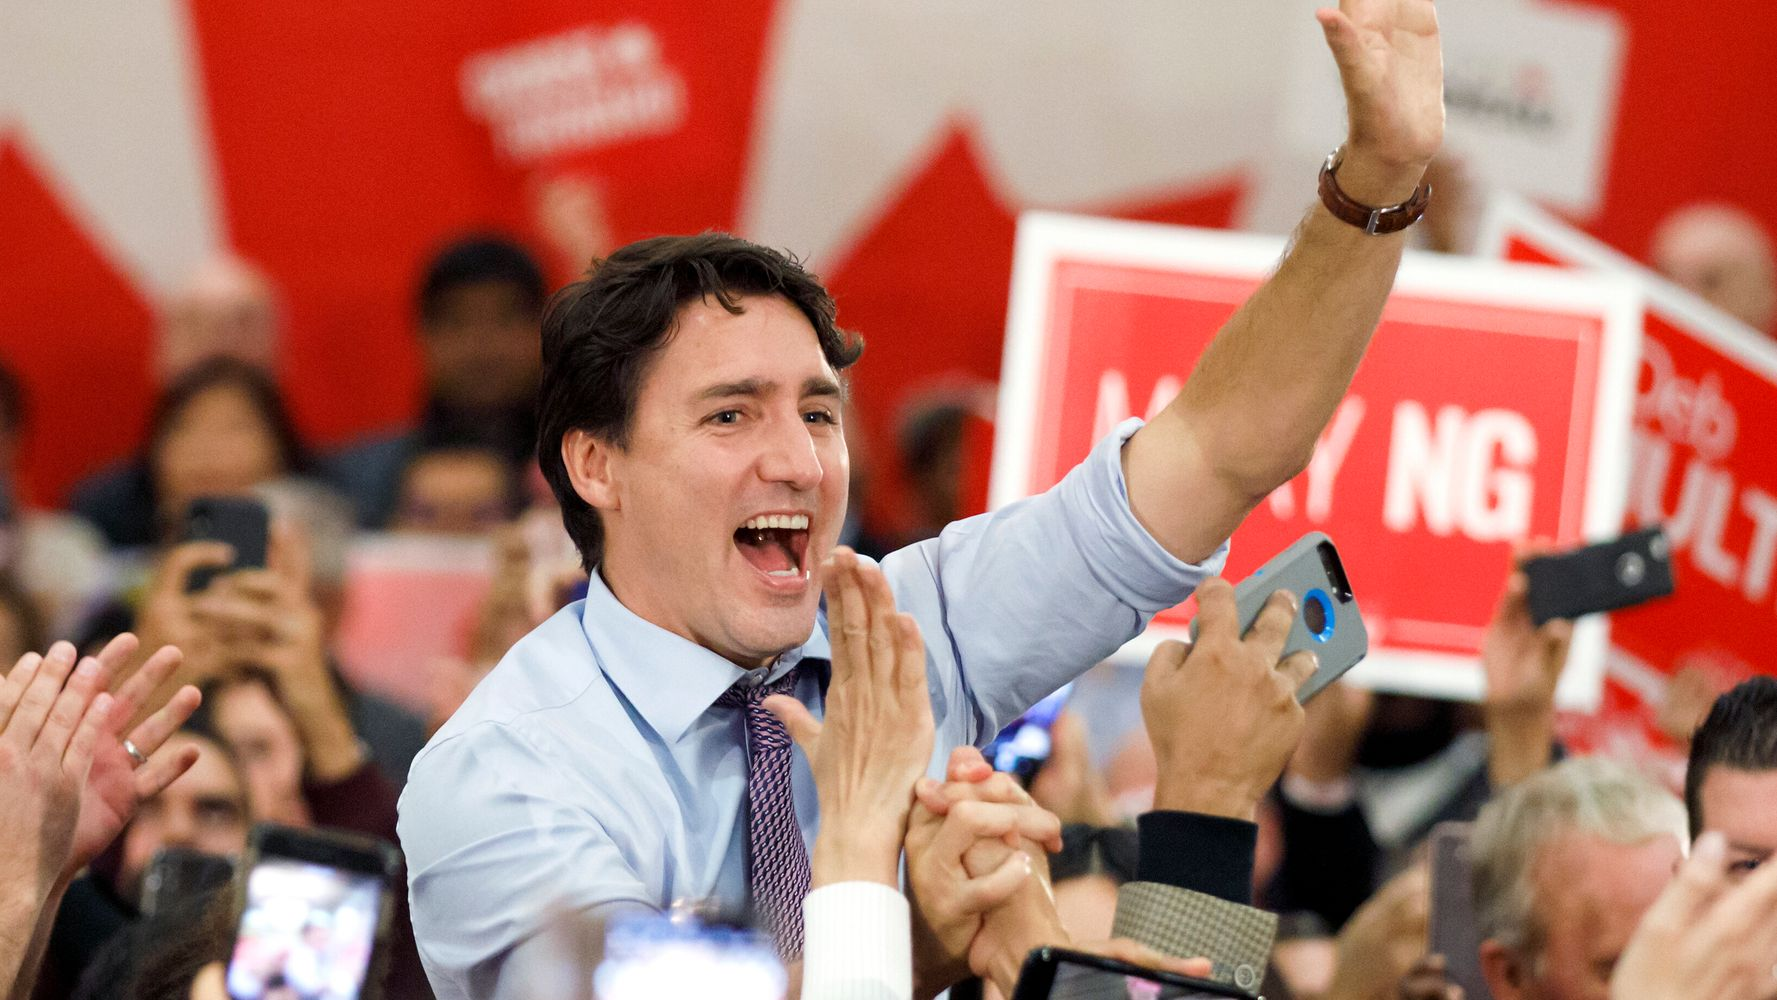 Westlake Legal Group 5dadc5832100004c1d34a944 Canada Votes In Election That Could Be The End For Justin Trudeau